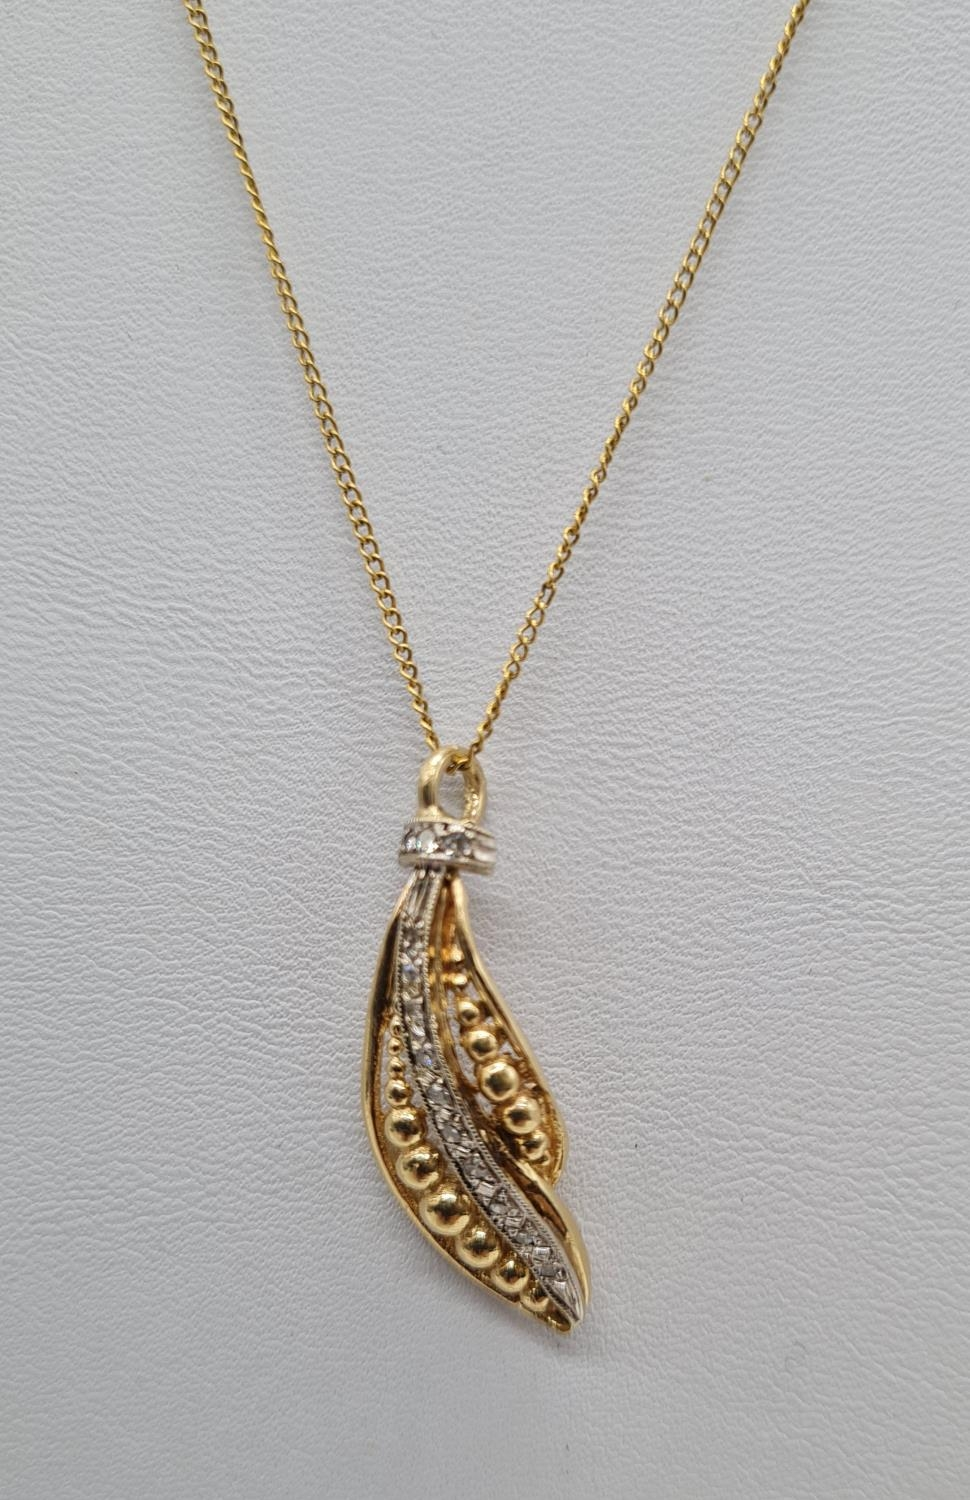 18ct gold diamond set pendant on chain, weight 3.69g and 40cm long, pendant 3 x 1cm - Image 3 of 9